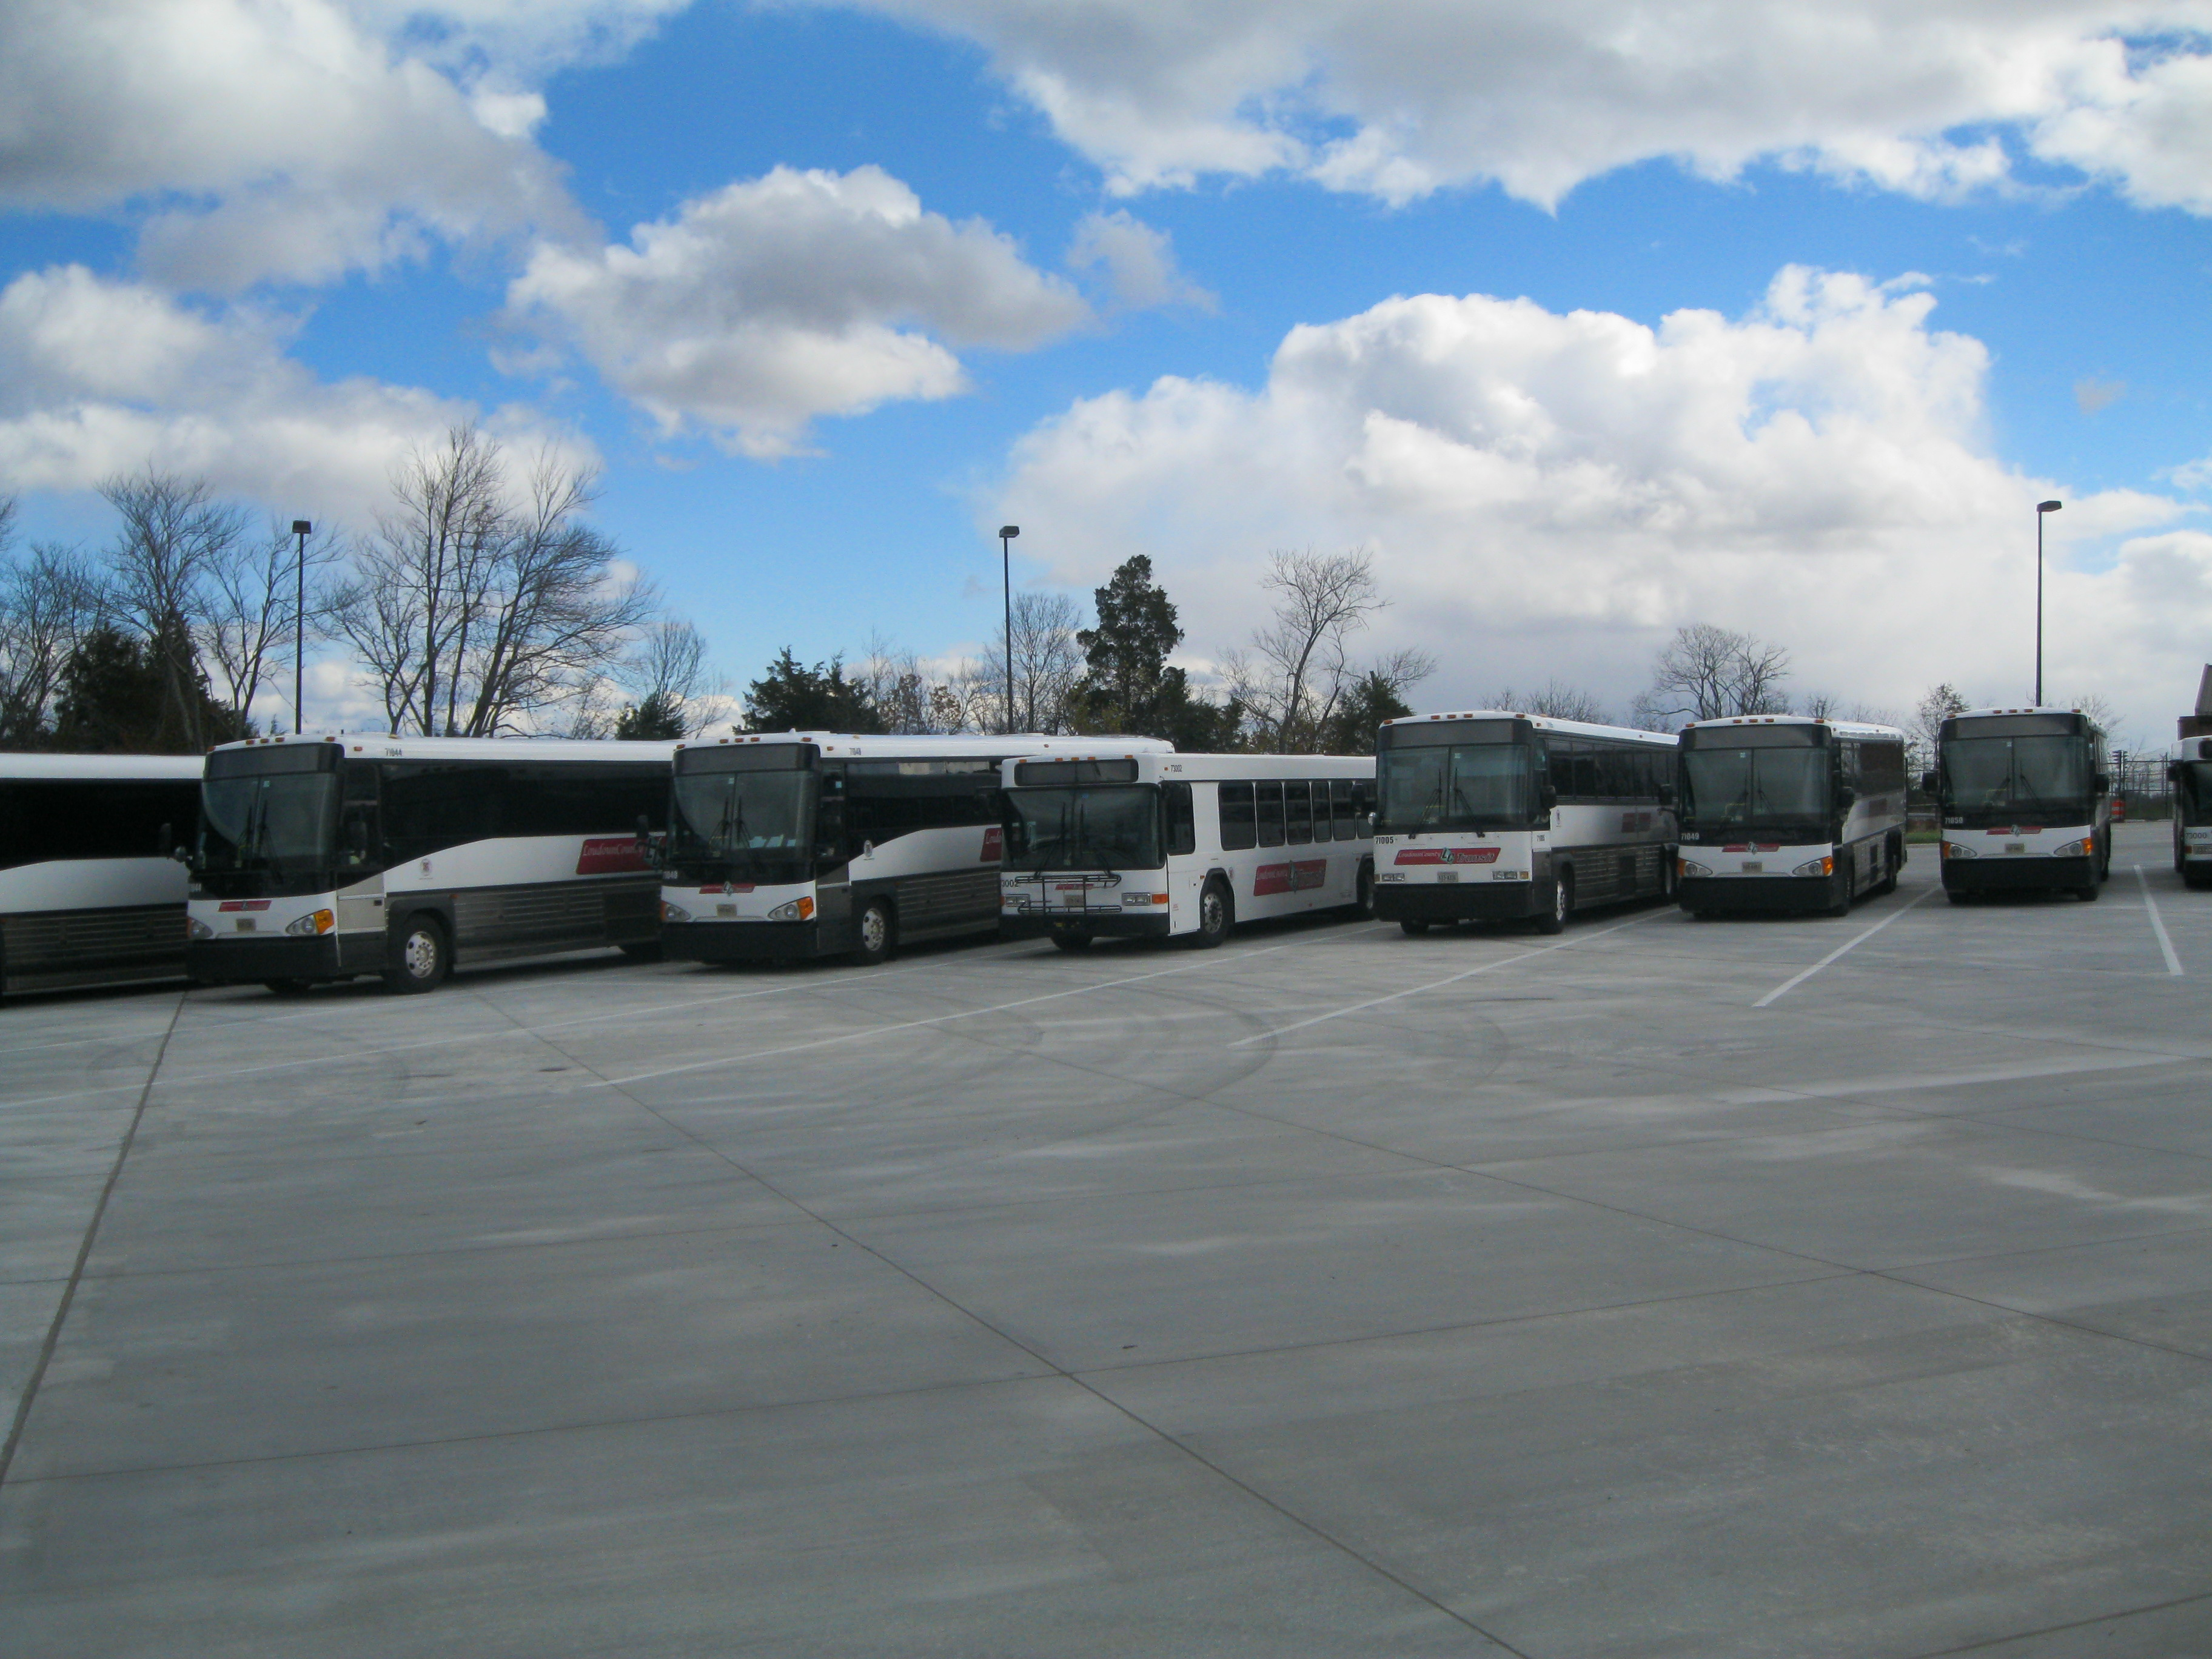 Buses parked at TMOF